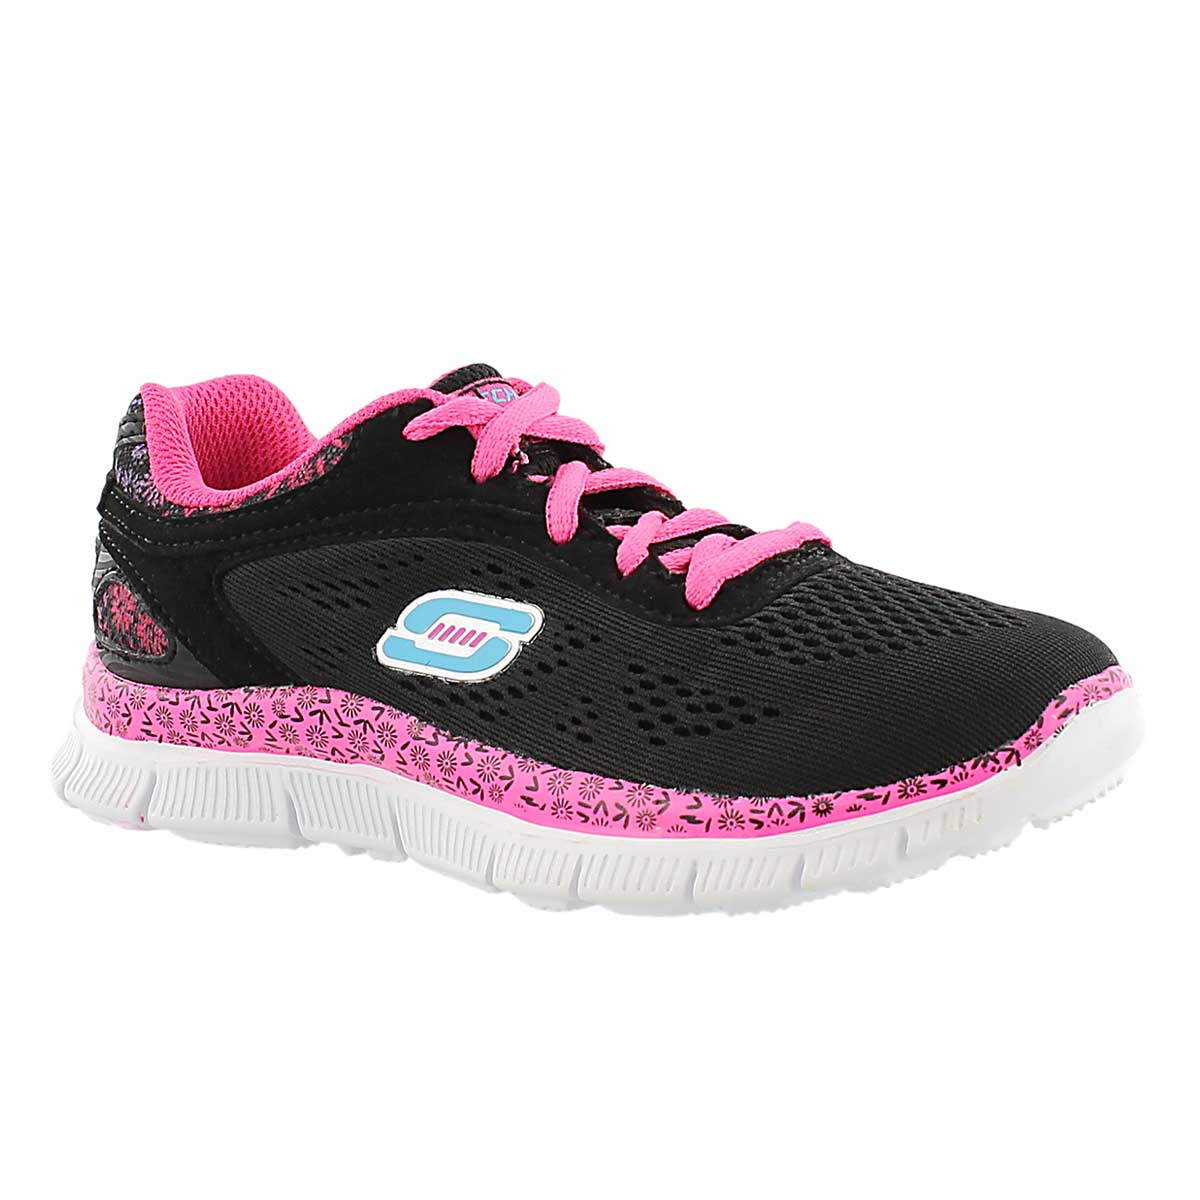 Girls' ISLAND STYLE black/pink lace up sneakers